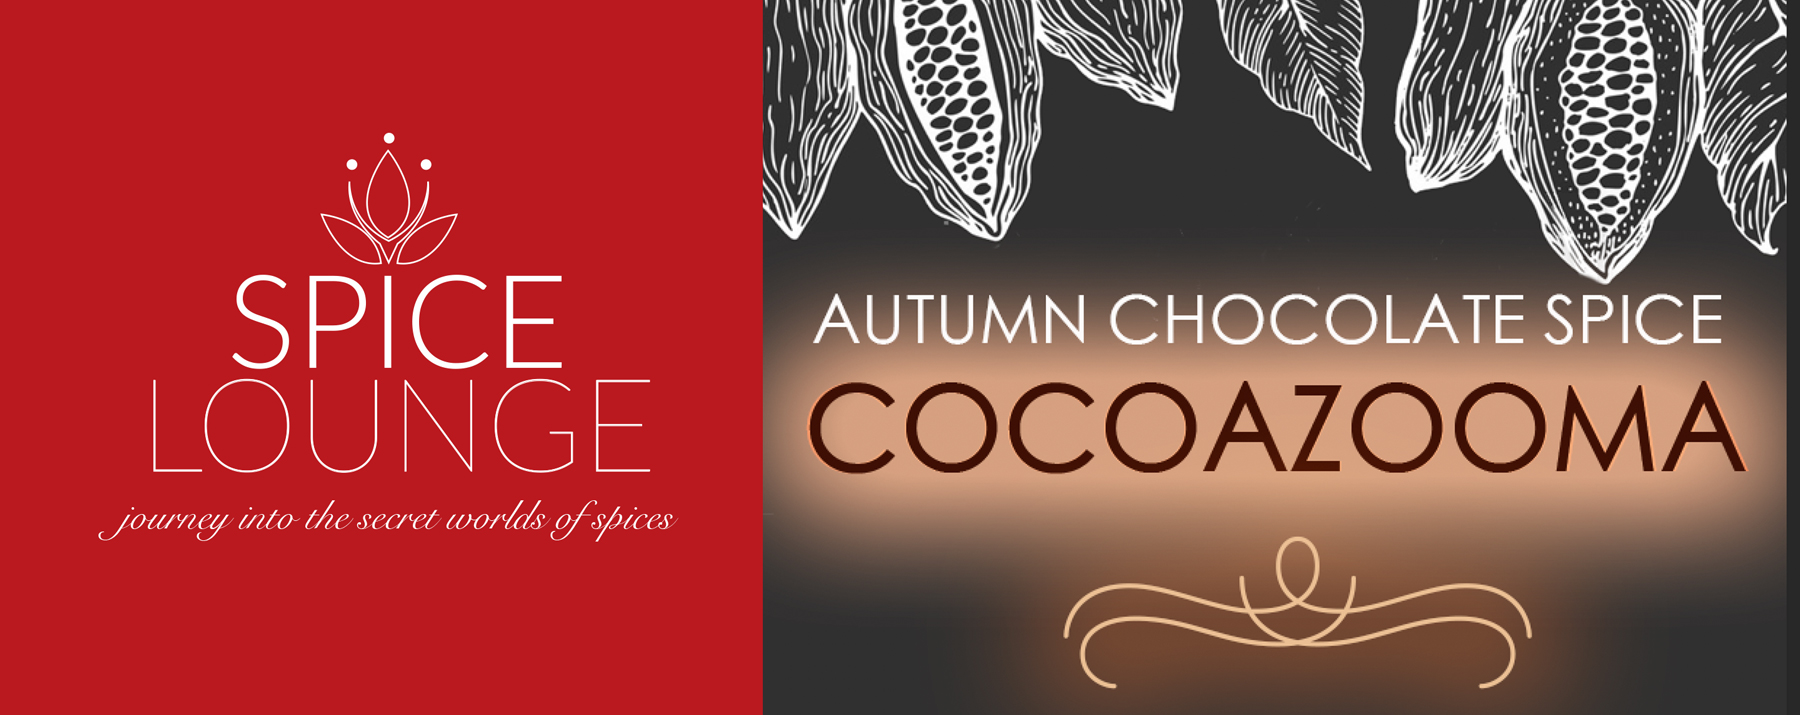 Spice Lounge: Autumn Chocolate Spice Cocoazooma